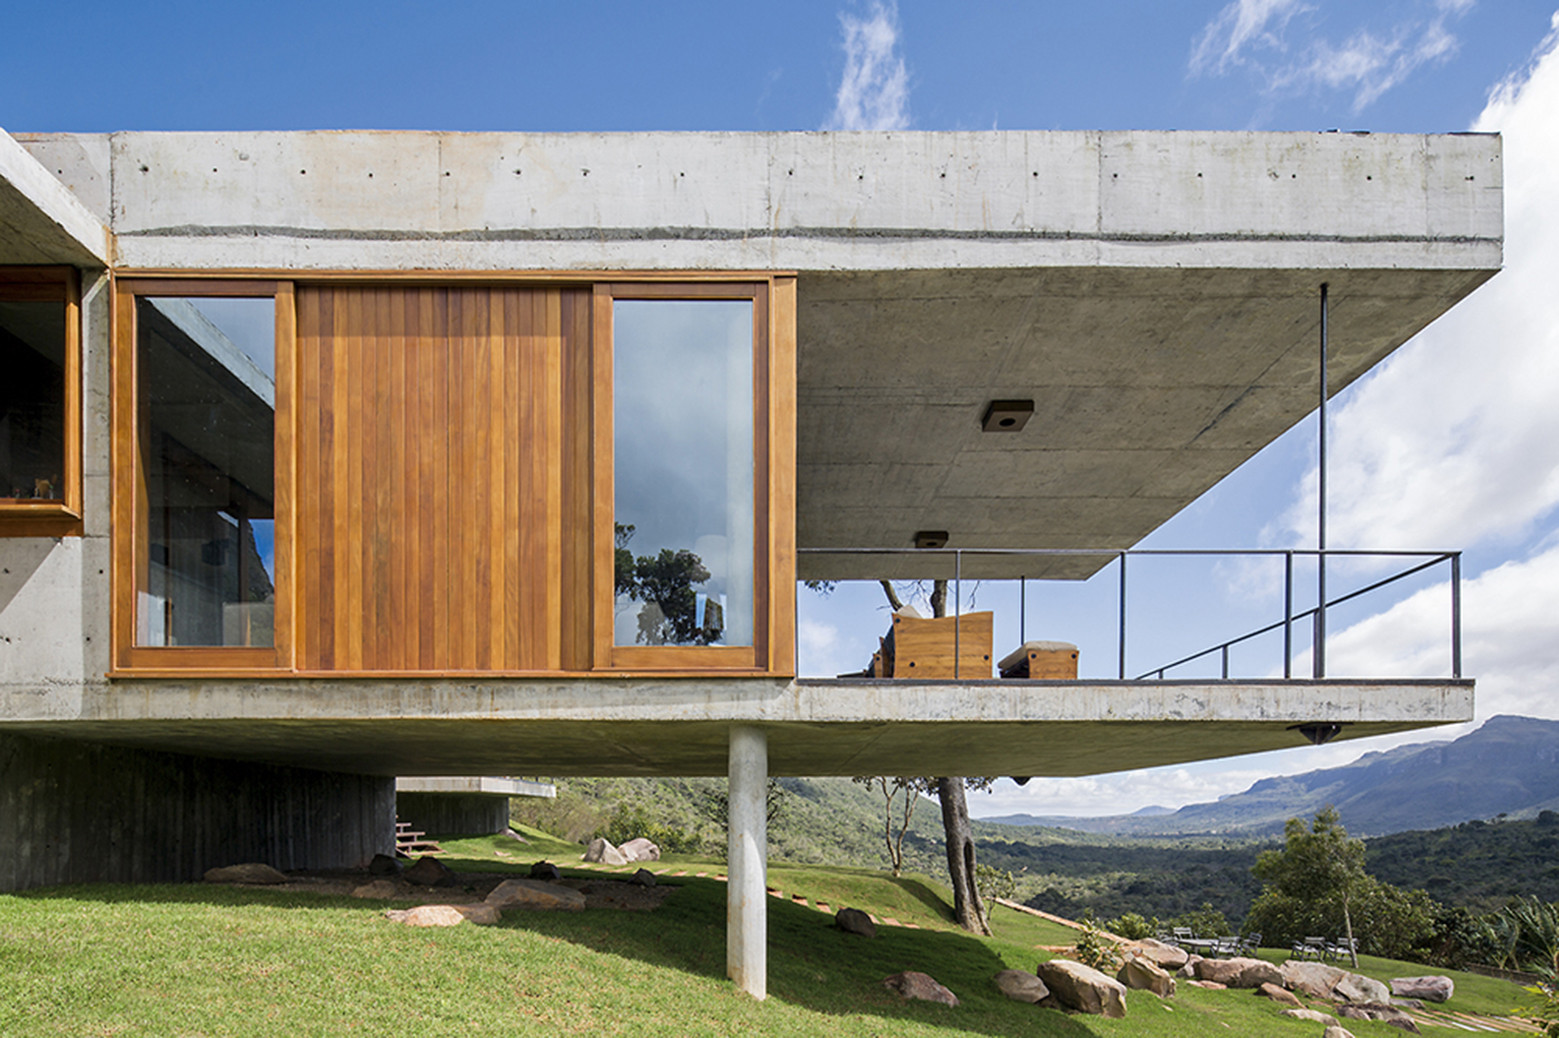 Brazilian Houses: 14 Homes with Wooden Window Frames